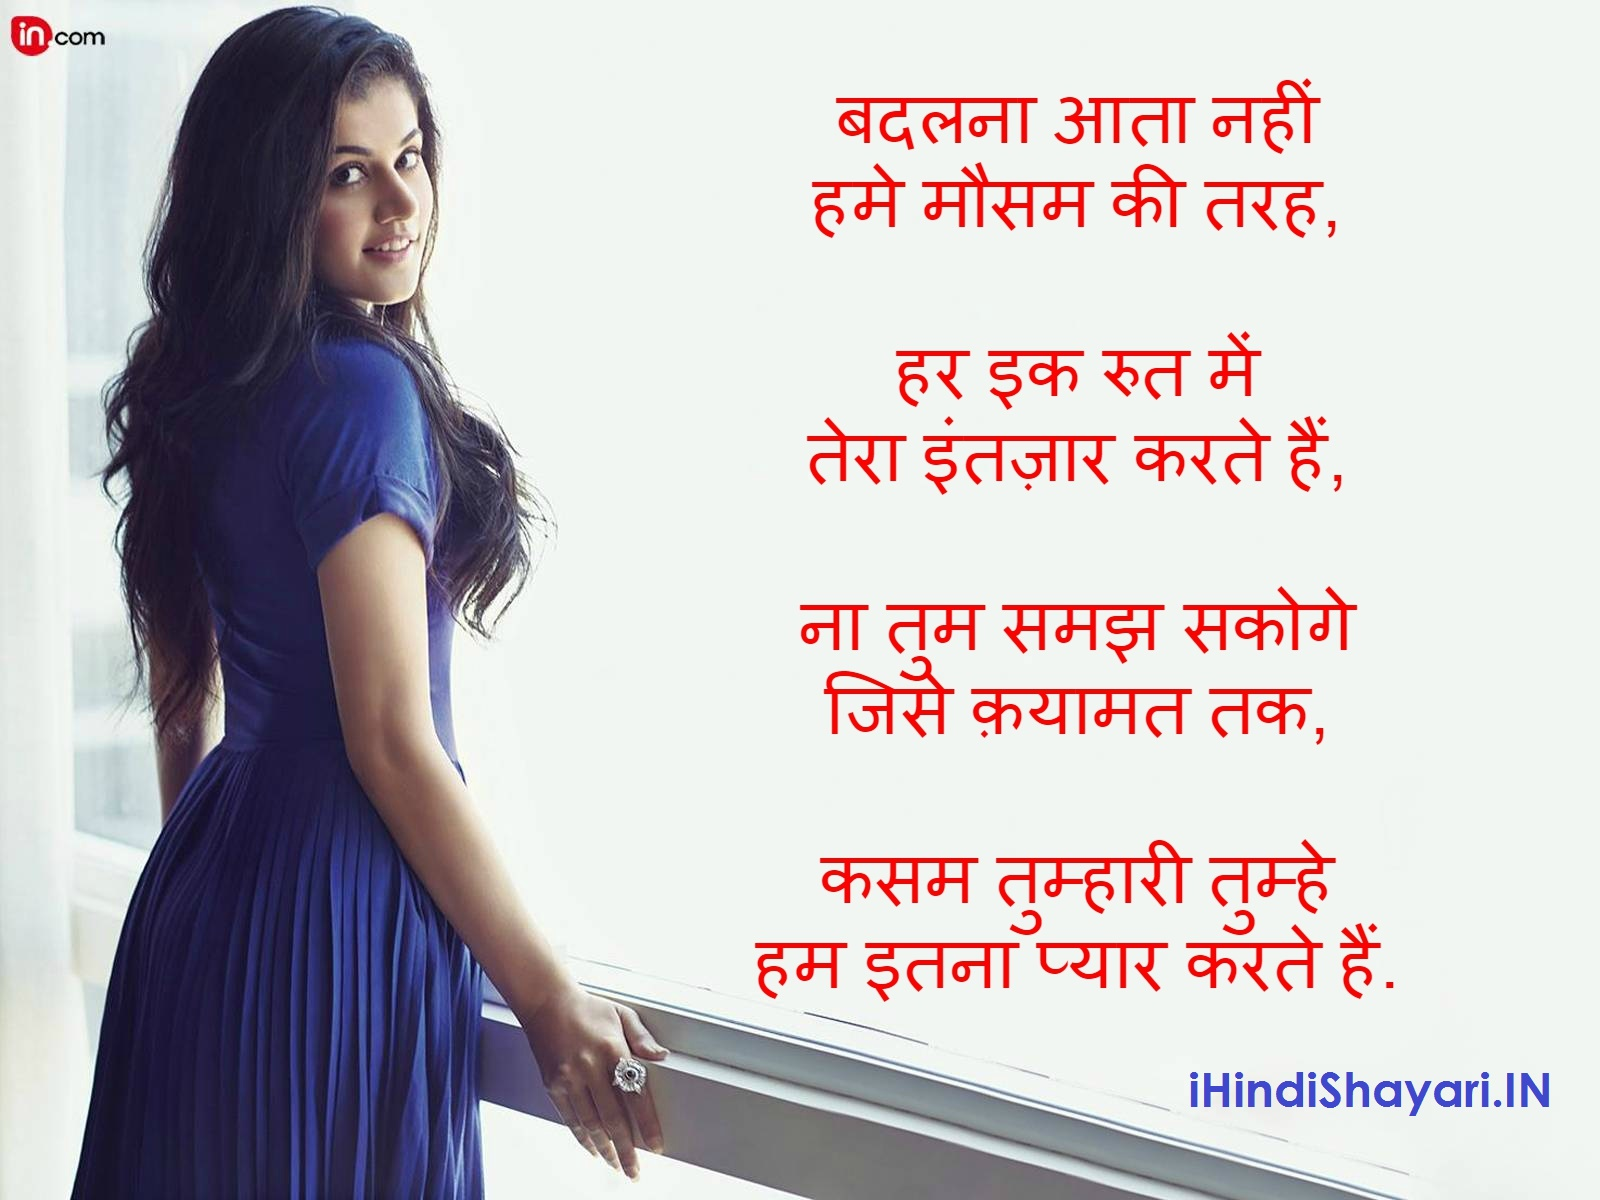 Wallpaper download love shayri - Shayari Images Download Sad